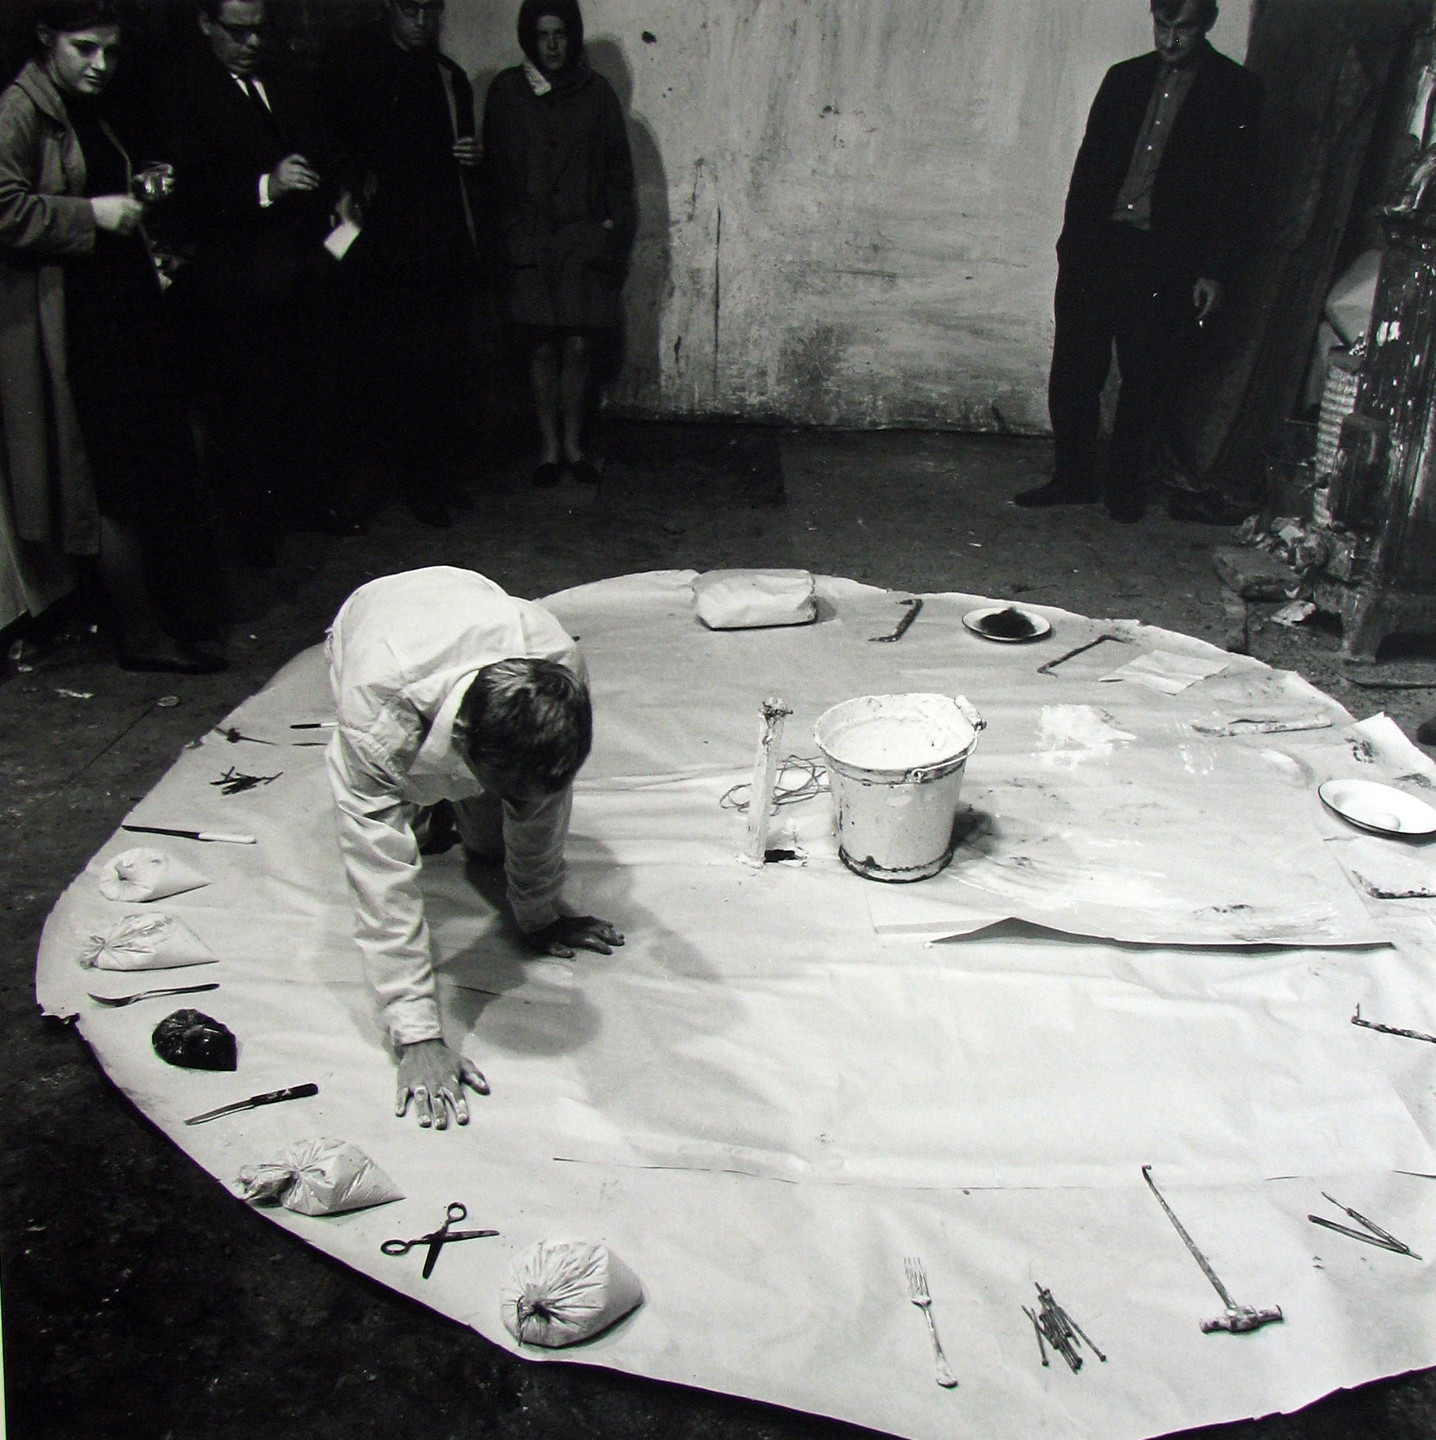 Günter Brus. Aktion in einem Kreis, Action in a Circle. 1966